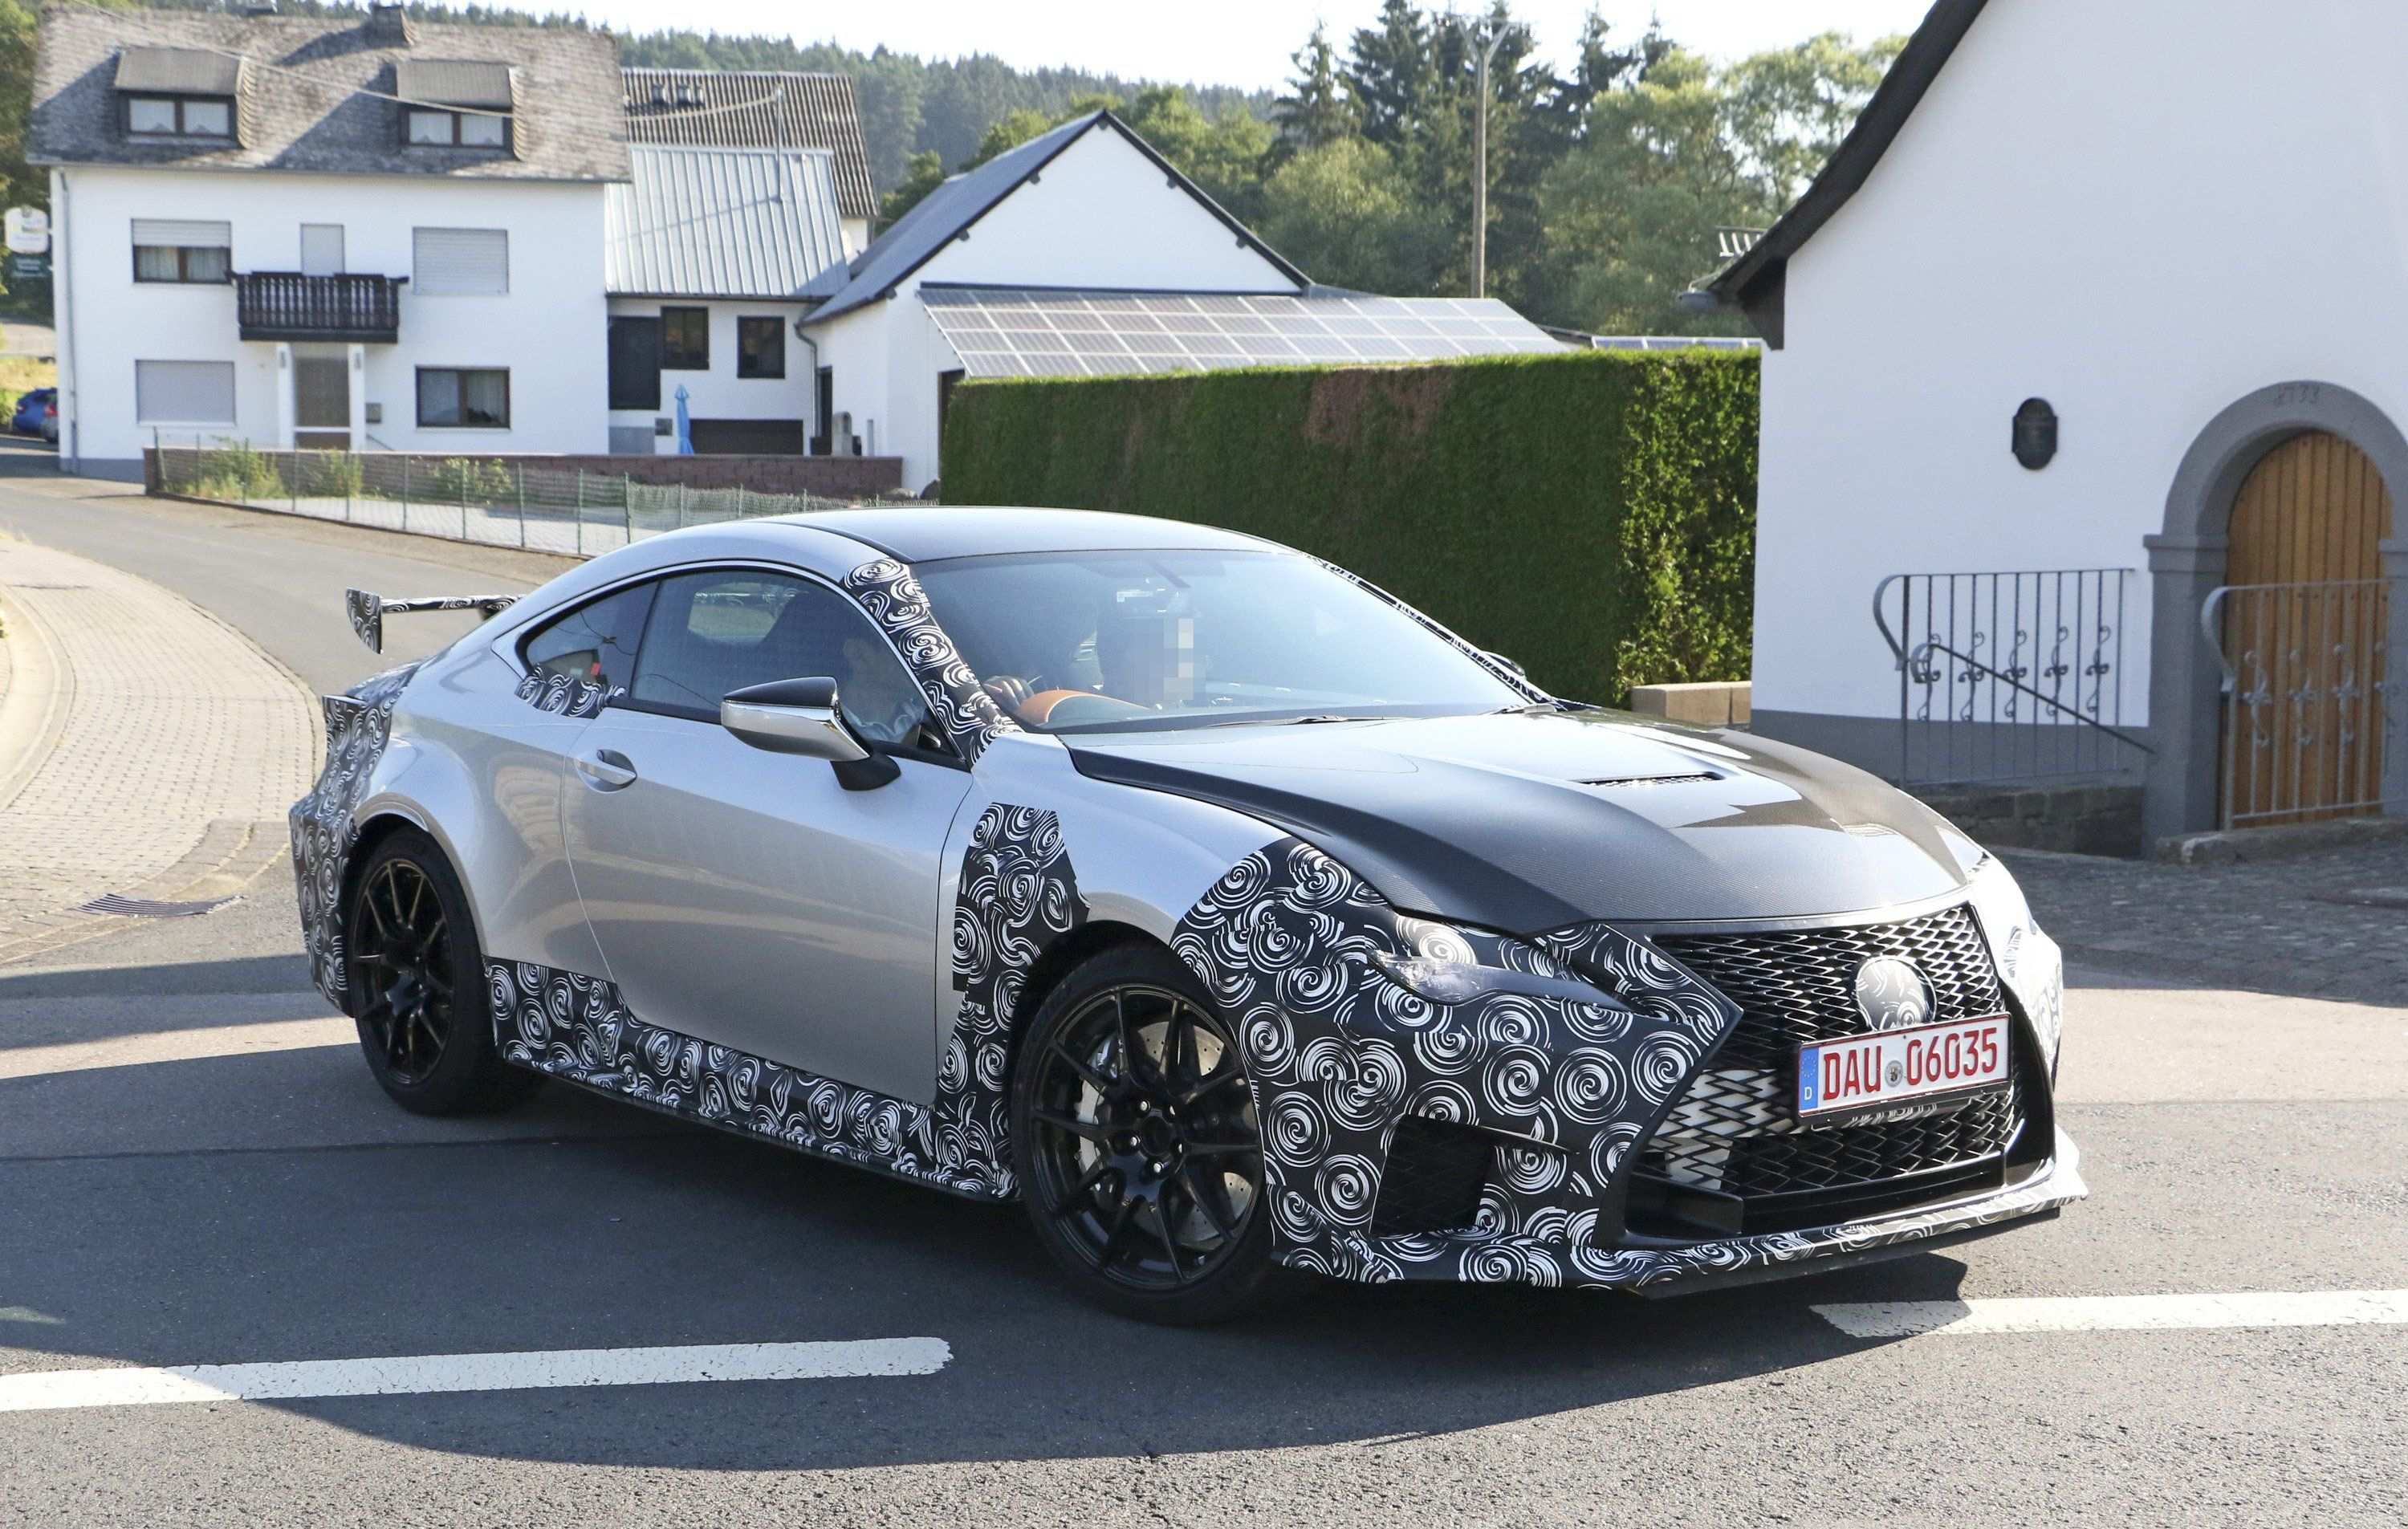 59 Great When Does Lexus Exterior 2020 New Concepts Picture by When Does Lexus Exterior 2020 New Concepts